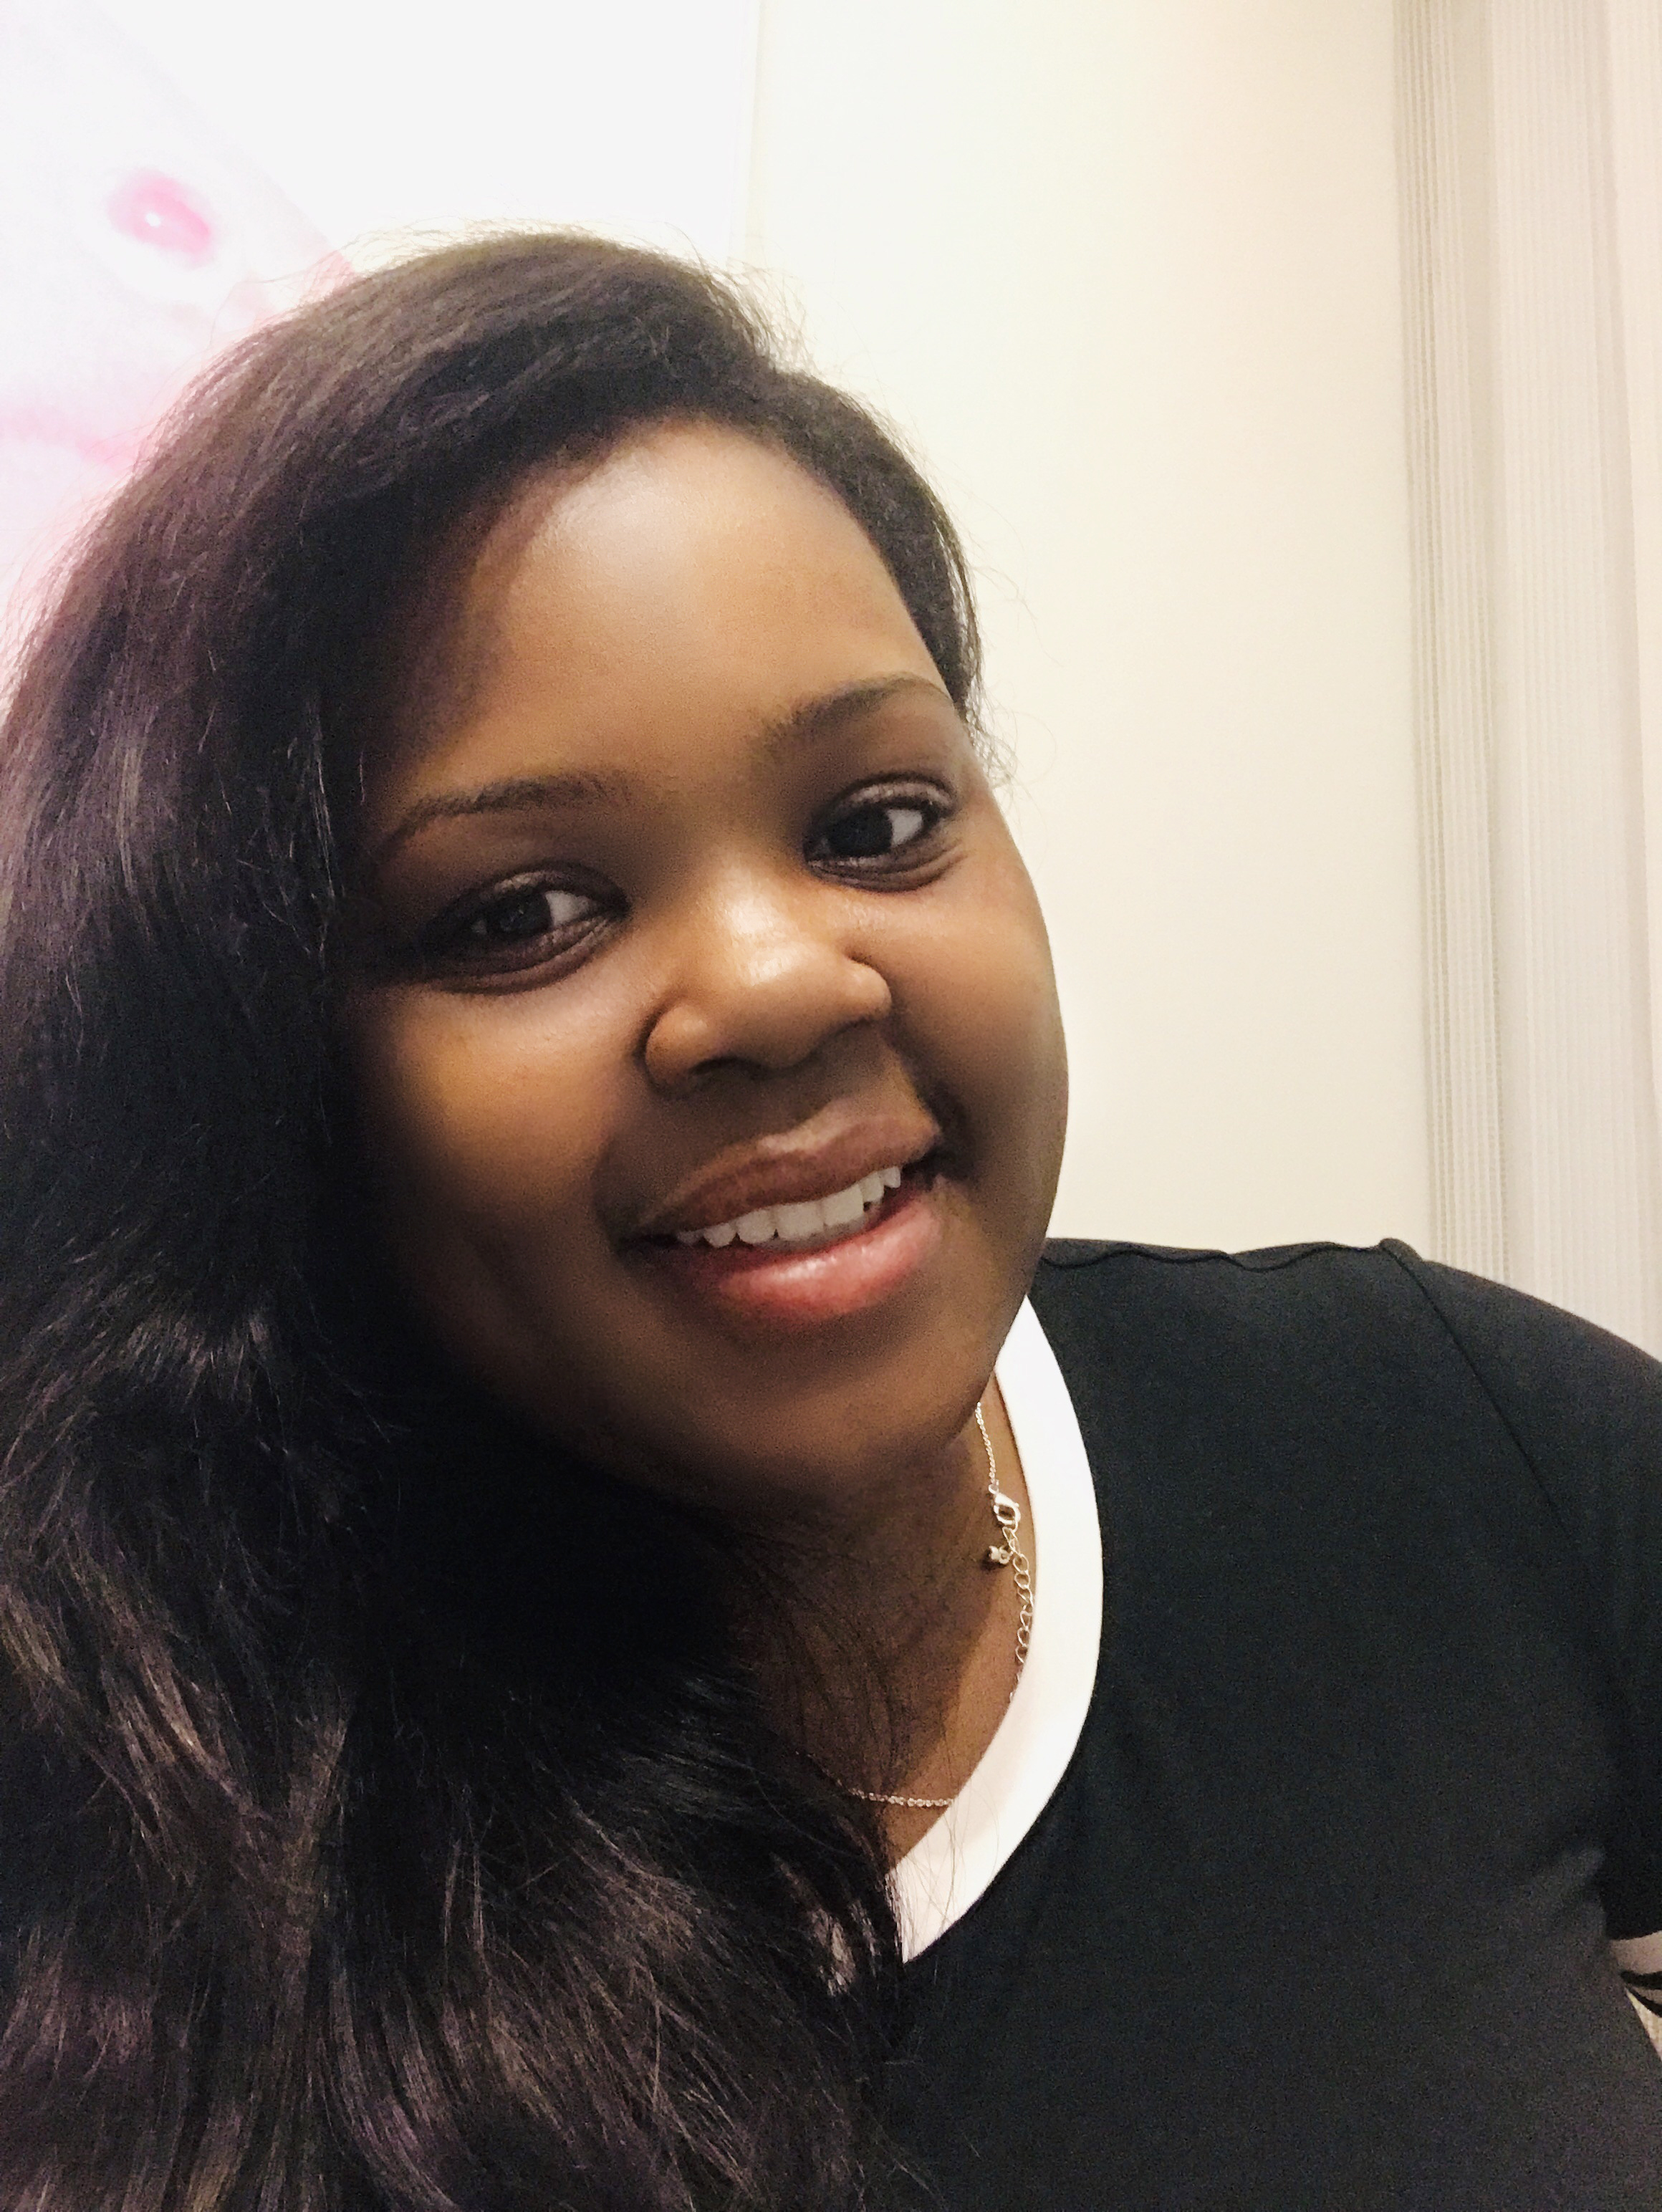 Sherylynne - As a Brooklyn, NY native, I have a deep love for writing, traveling, cake decorating, leading praise and worship, and ministering to Christian Single Women.